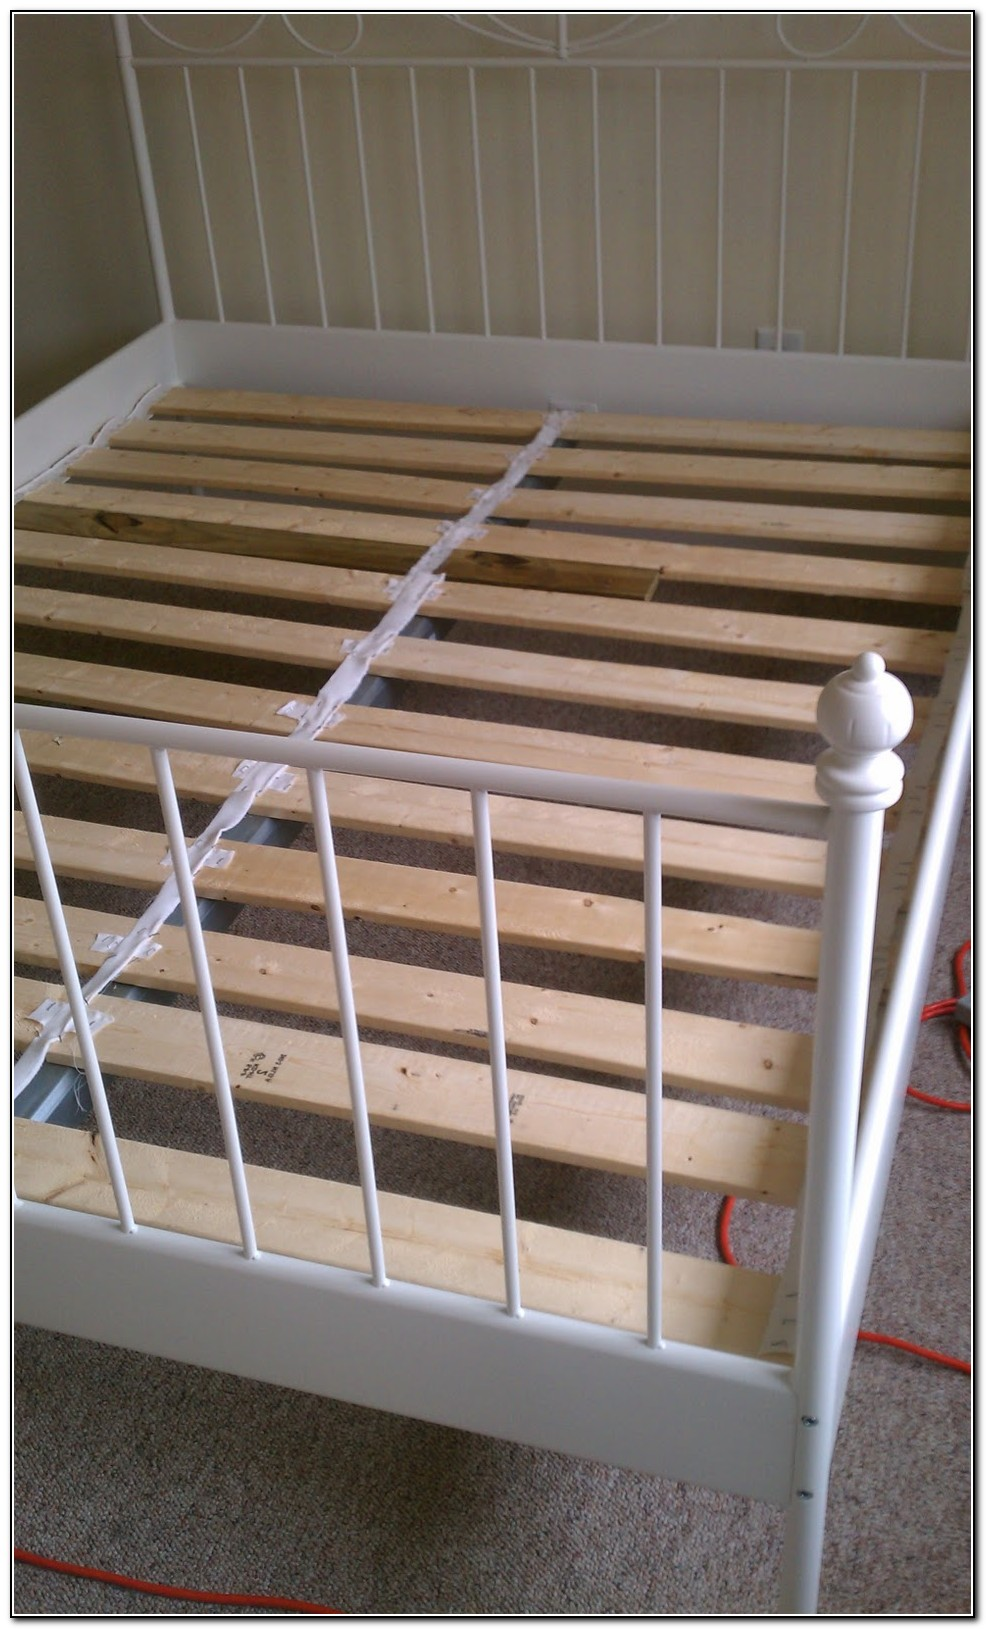 Ikea Bed Slats Slipping